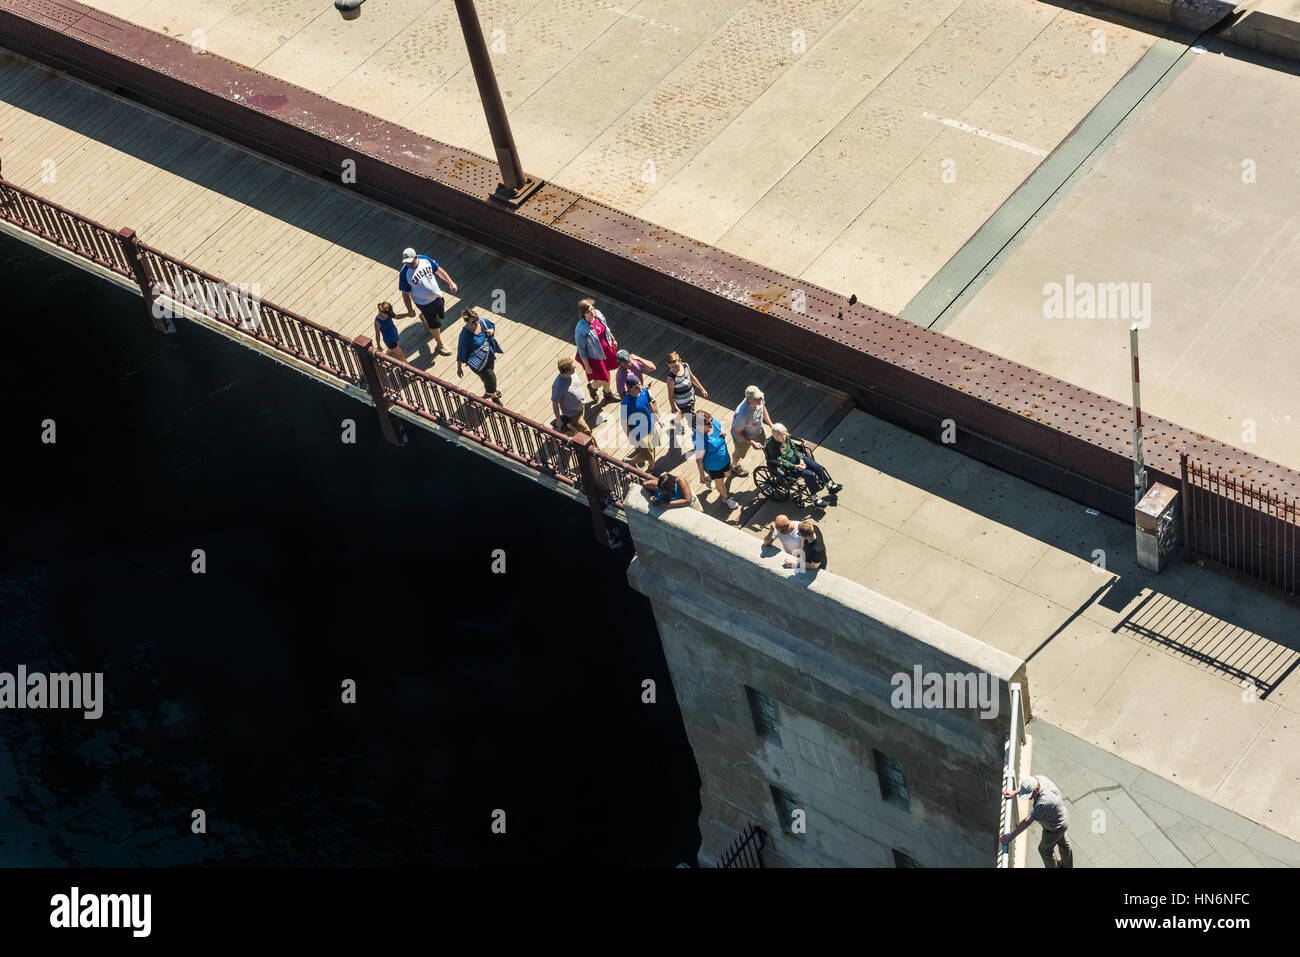 Chicago, USA - May 30, 2016: Aerial view of people walking on DuSable bridge in downtown - Stock Image